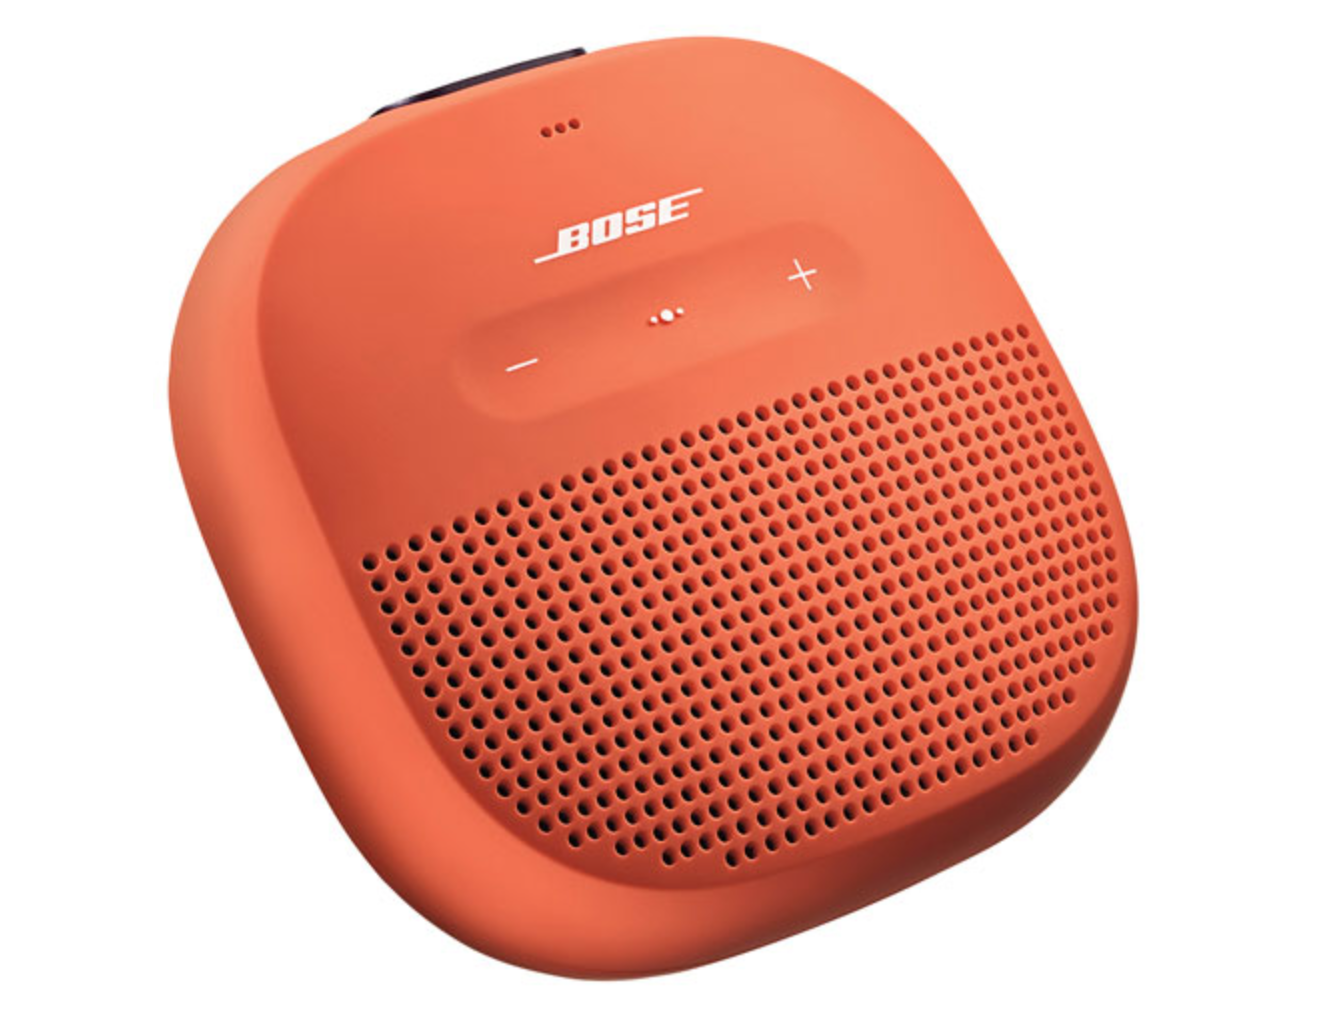 portable bluetooth speaker buying guide - bose portable bluetooth speaker